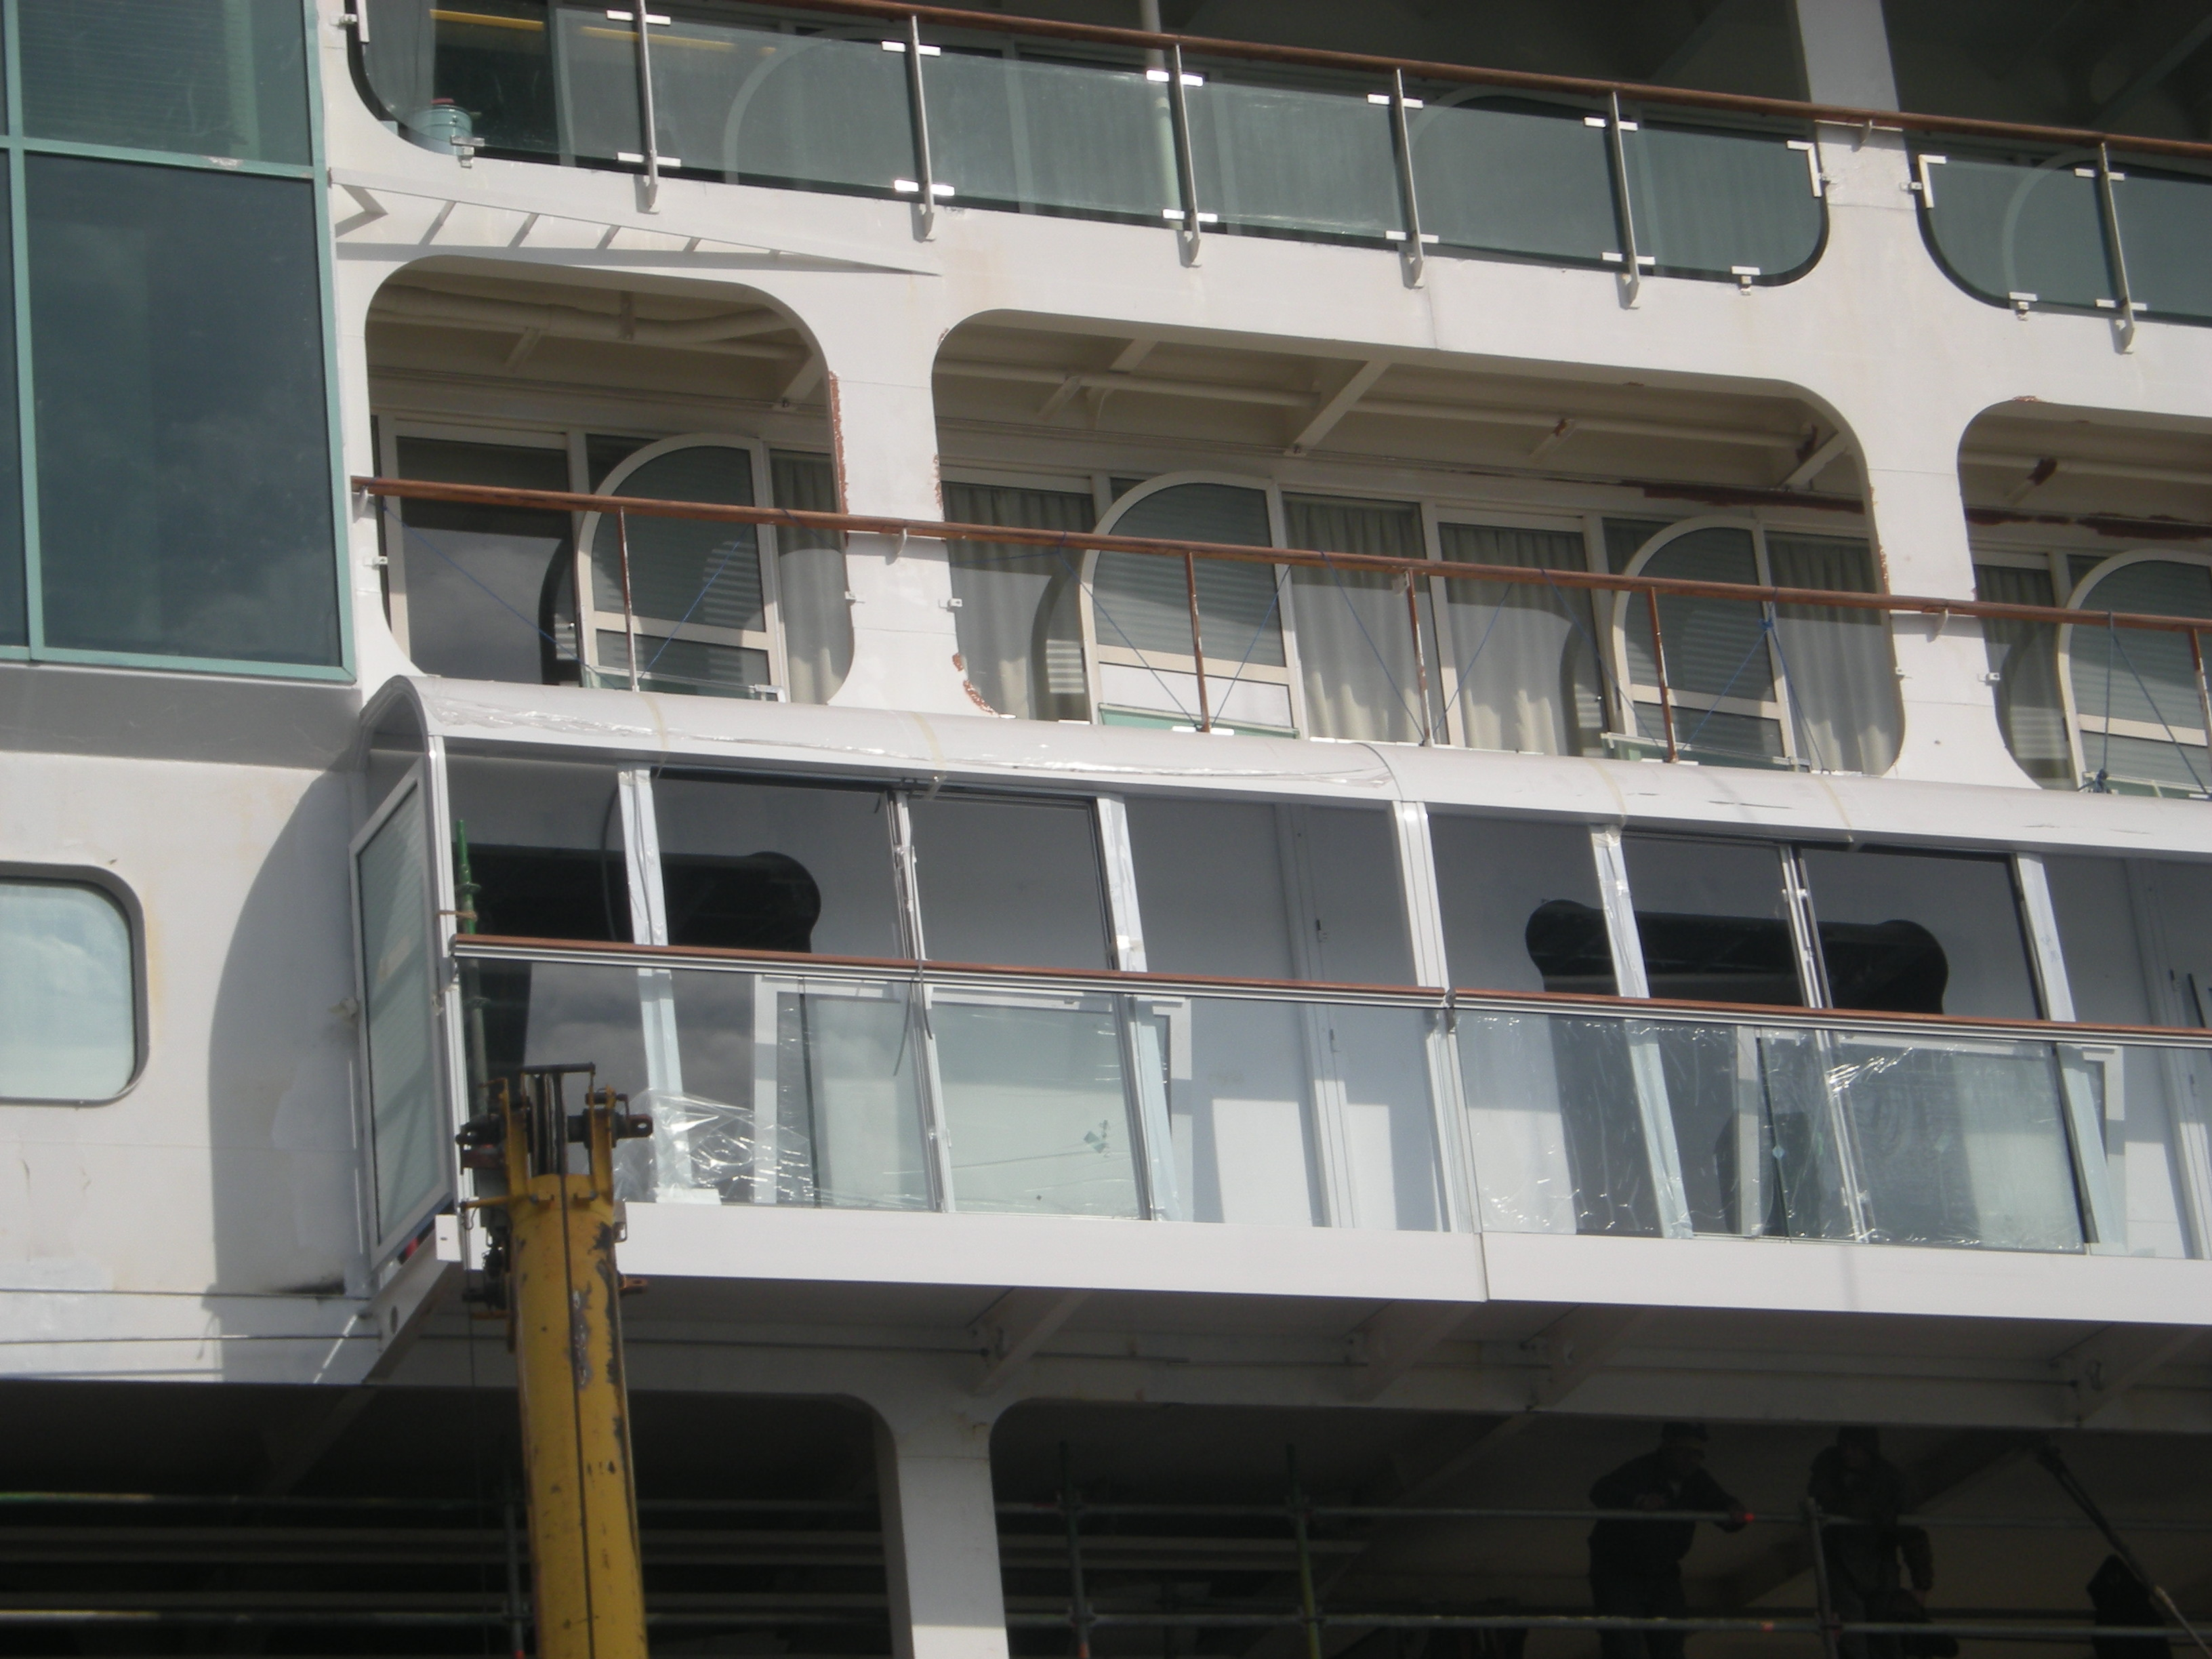 New Balconies Onboard Splendour of the Seas